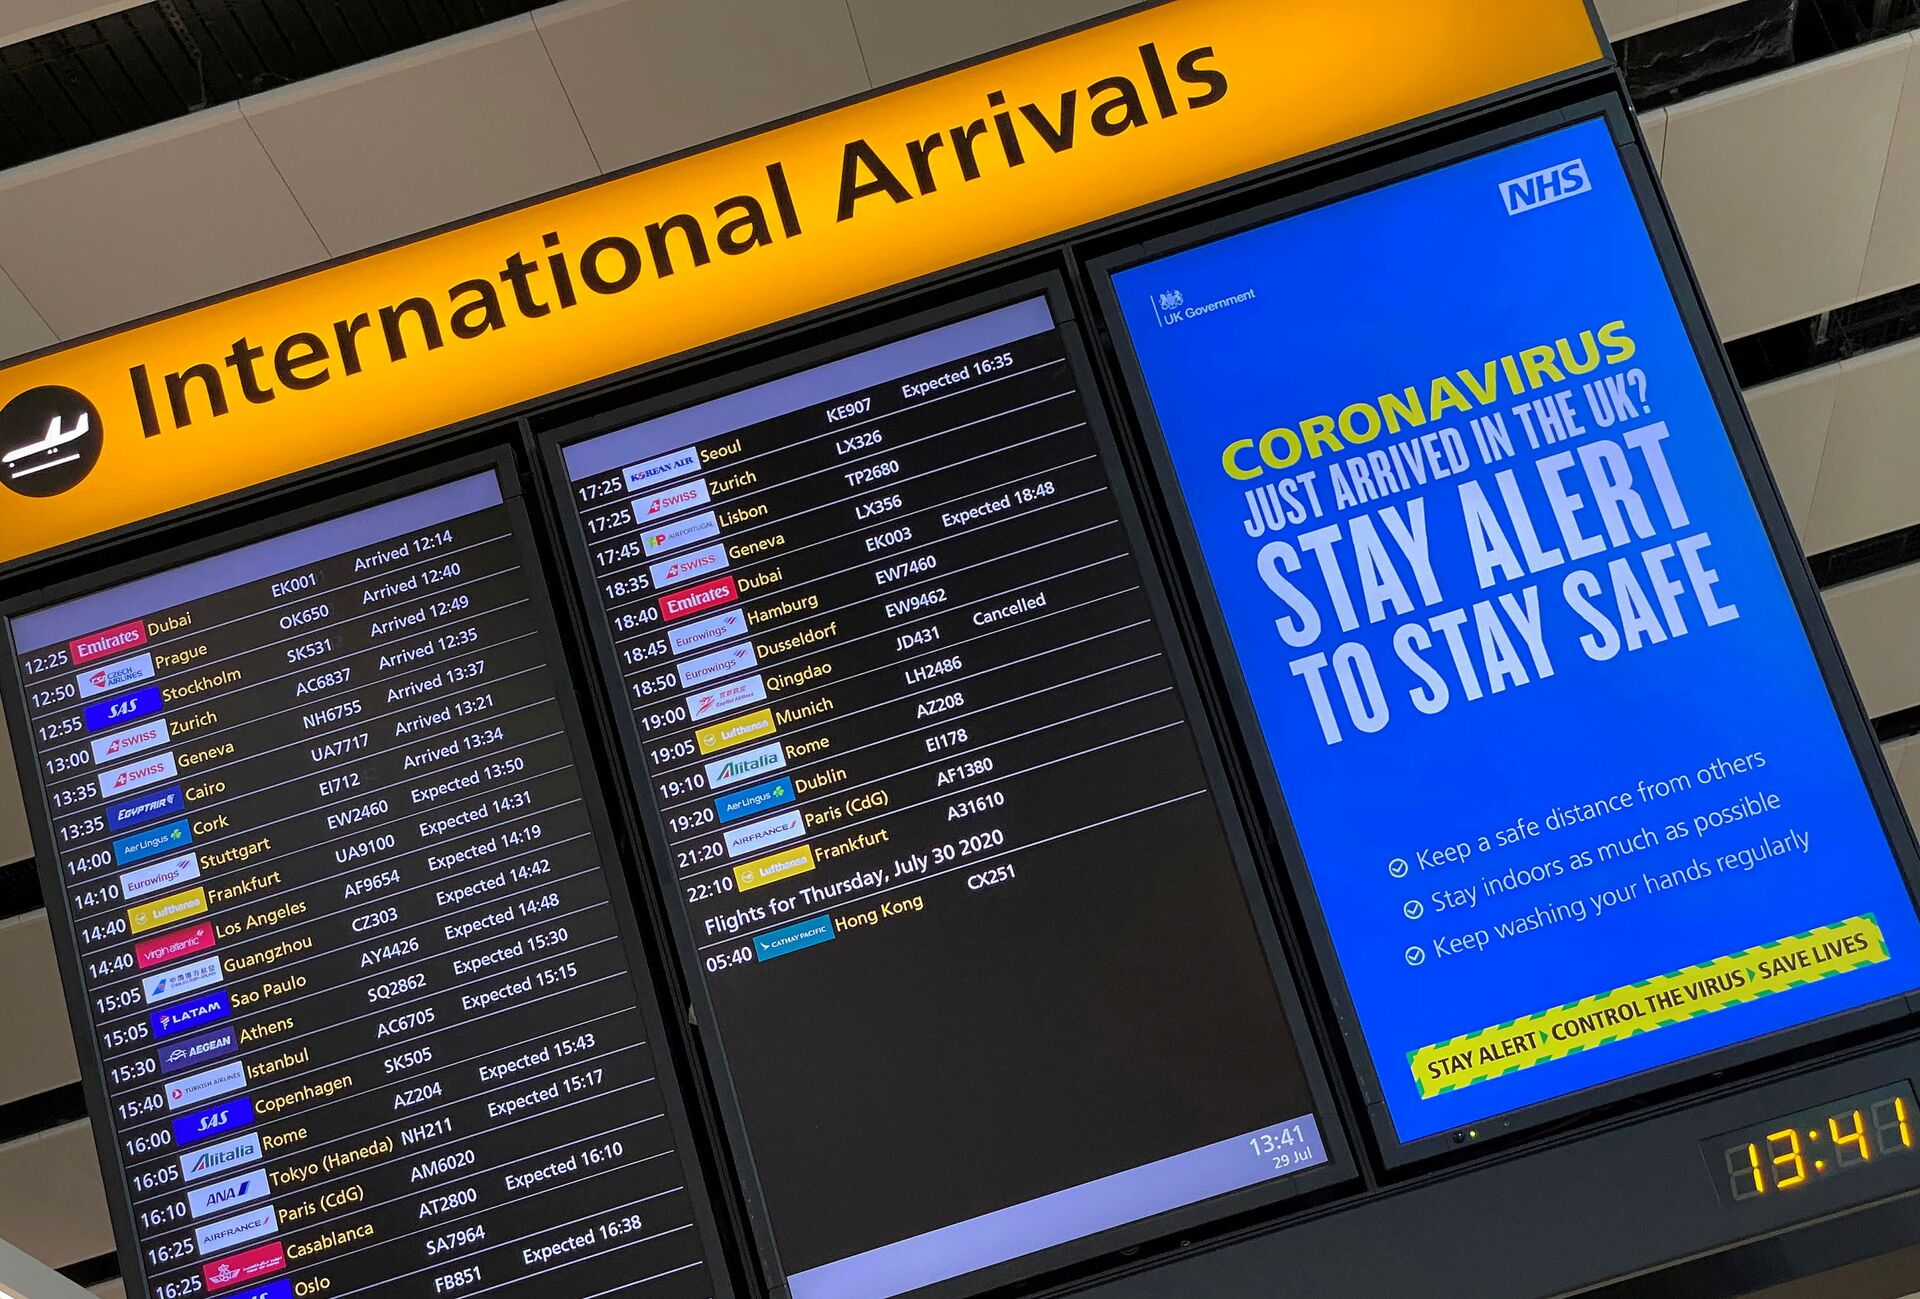 A public health campaign message is displayed on an arrivals information board at Heathrow Airport, following the outbreak of the coronavirus disease (COVID-19), London, Britain, July 29, 2020 - Sputnik International, 1920, 07.09.2021